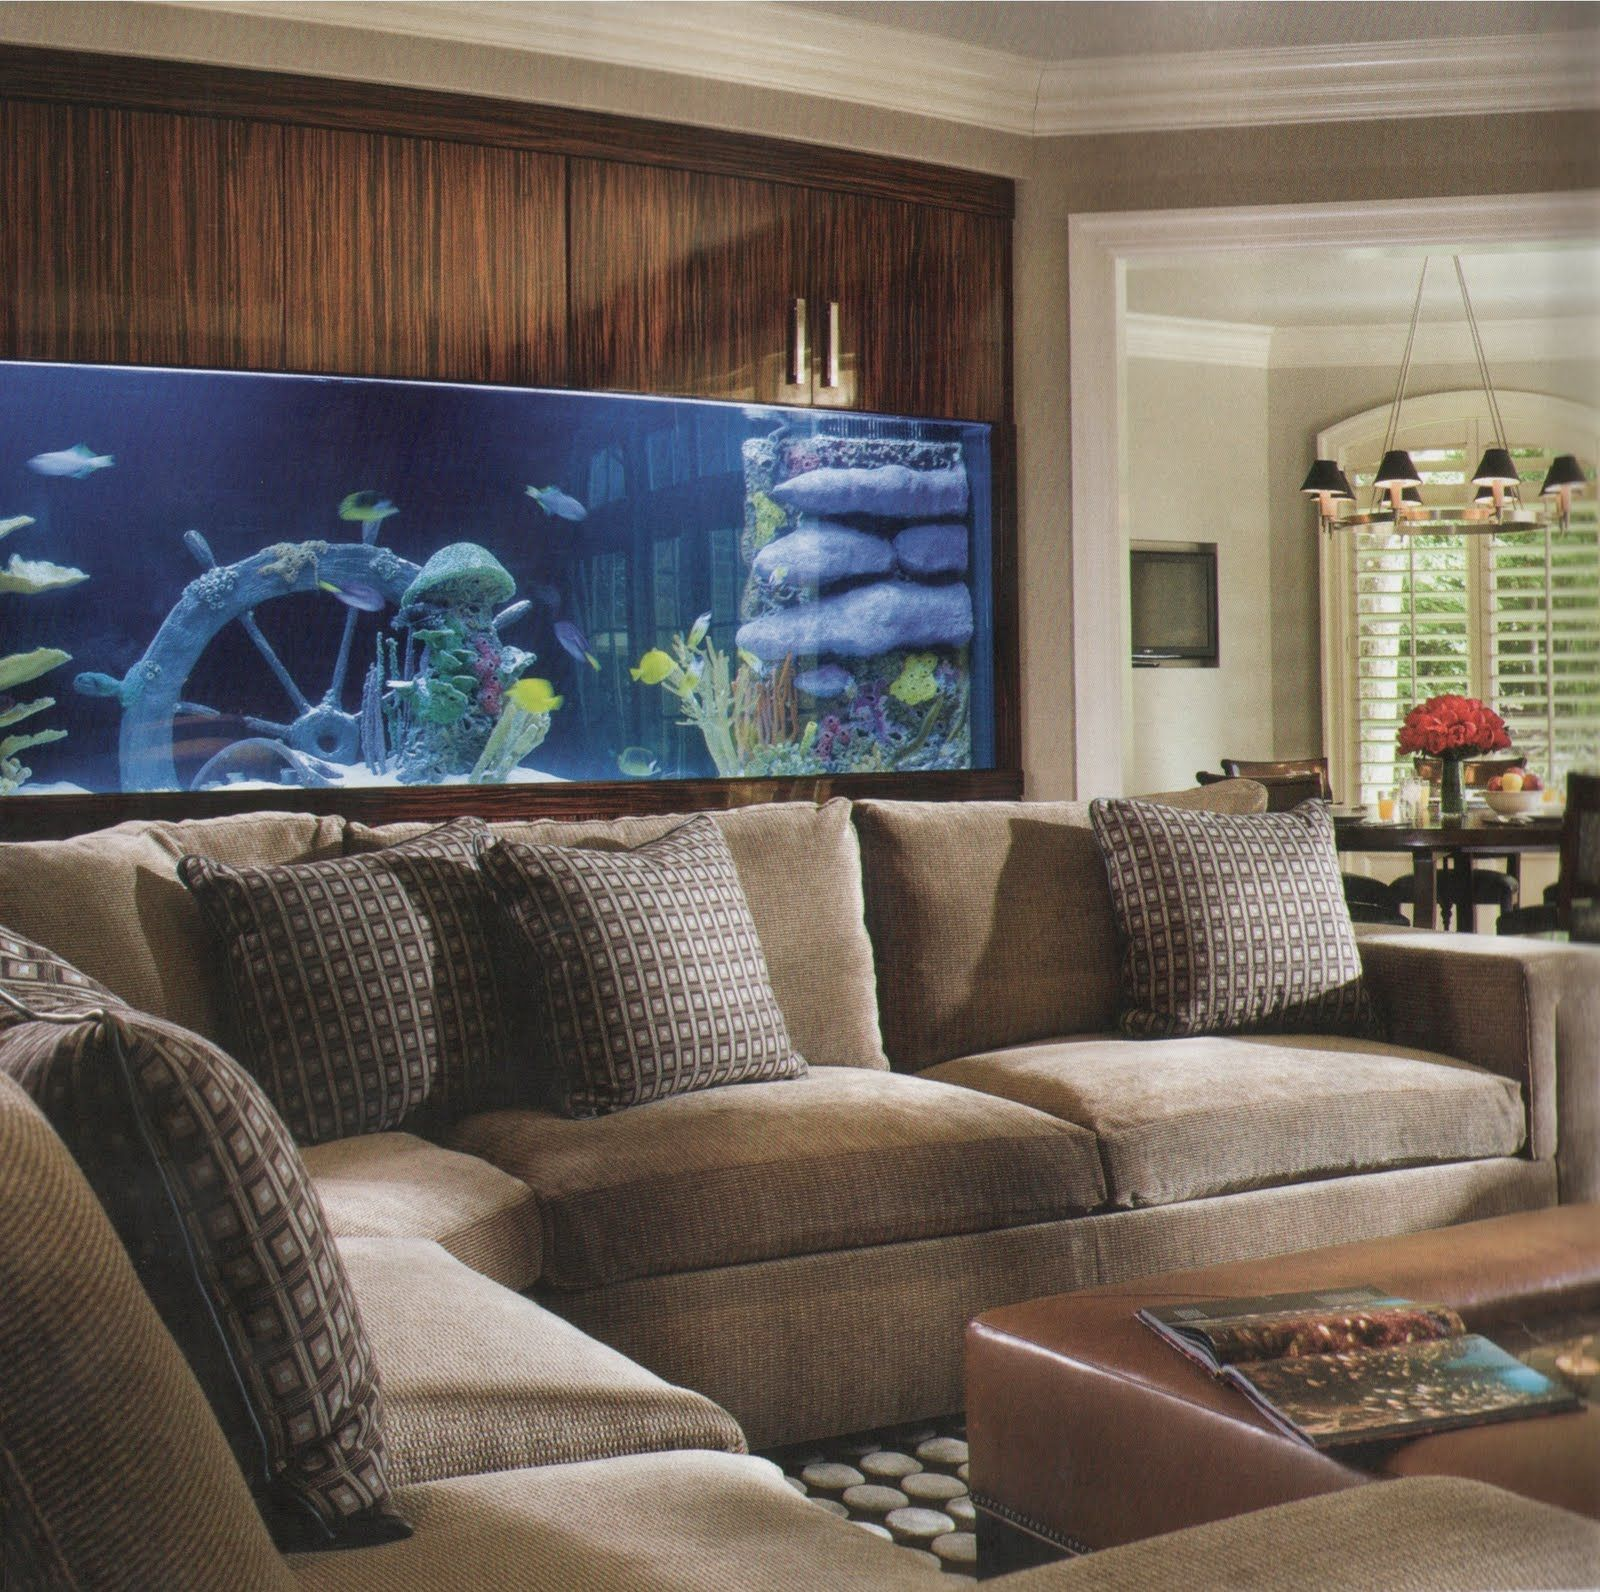 Fish tank living room table - 79 Best Images About Aquariums On Pinterest A Tree Bonsai Trees And Saltwater Fish Tanks